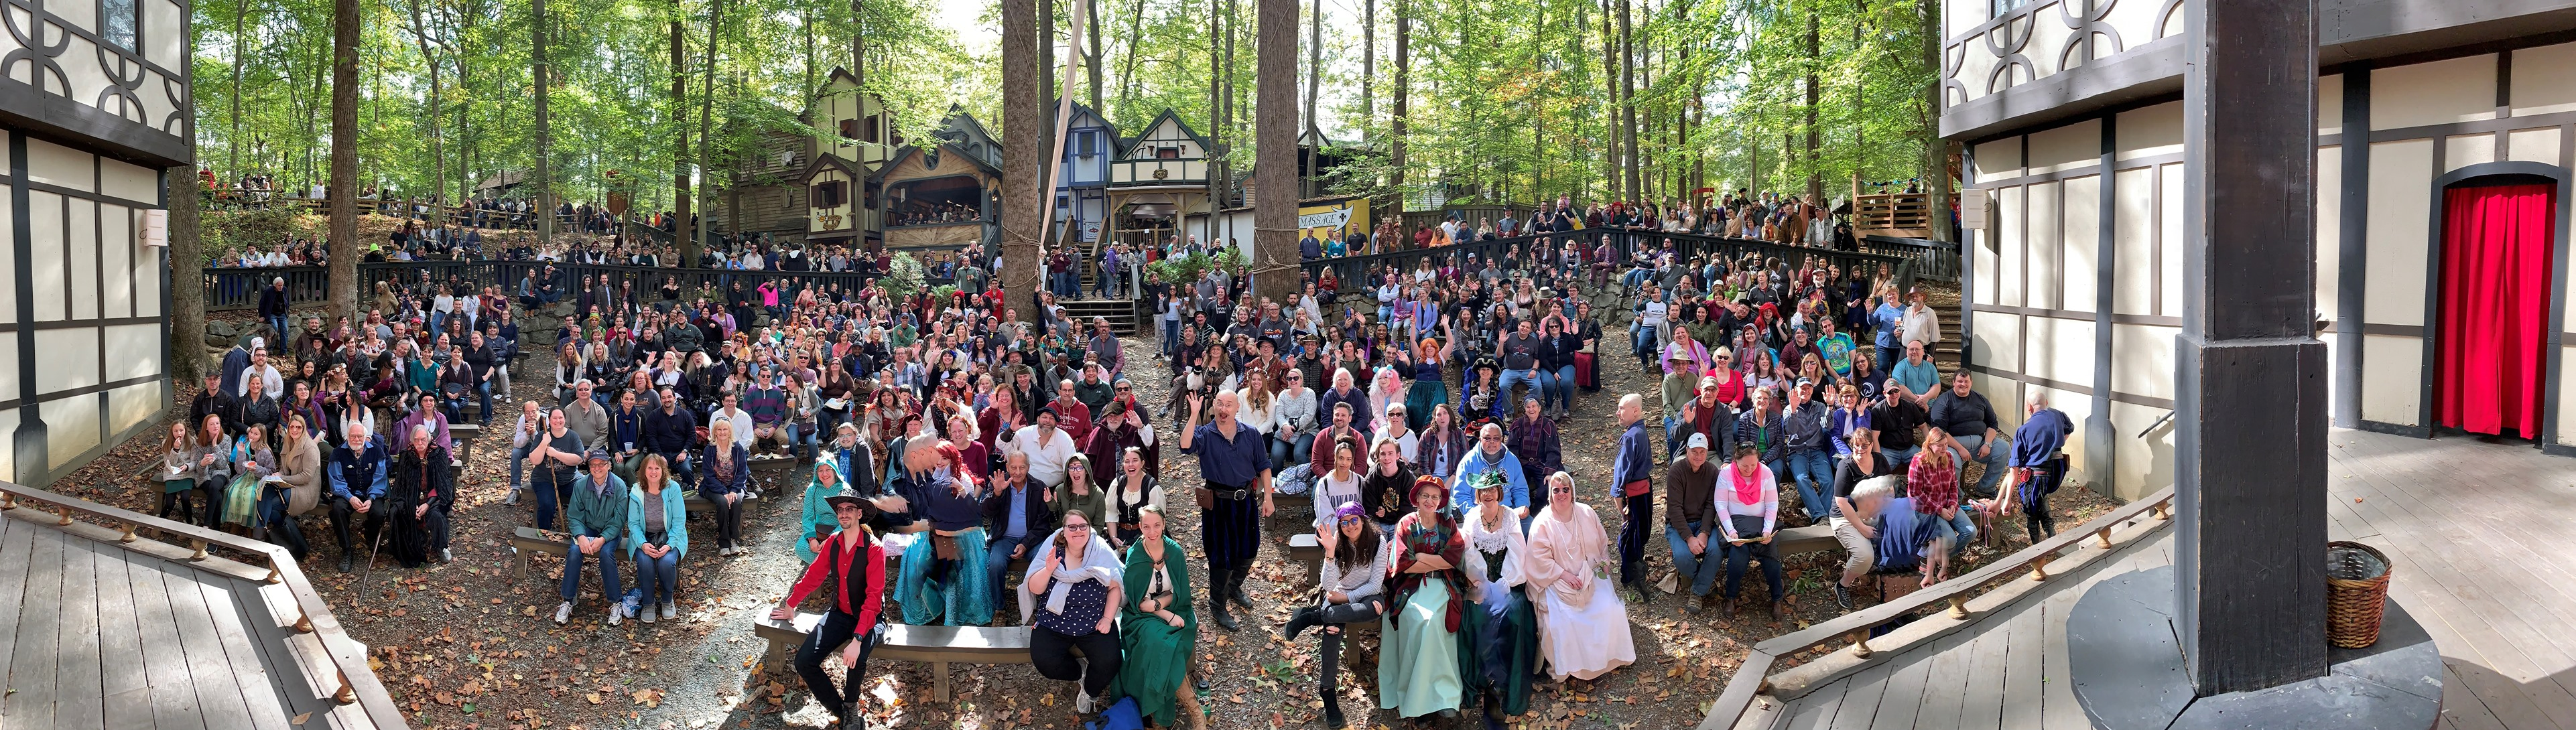 Audience at MD Renn Fest